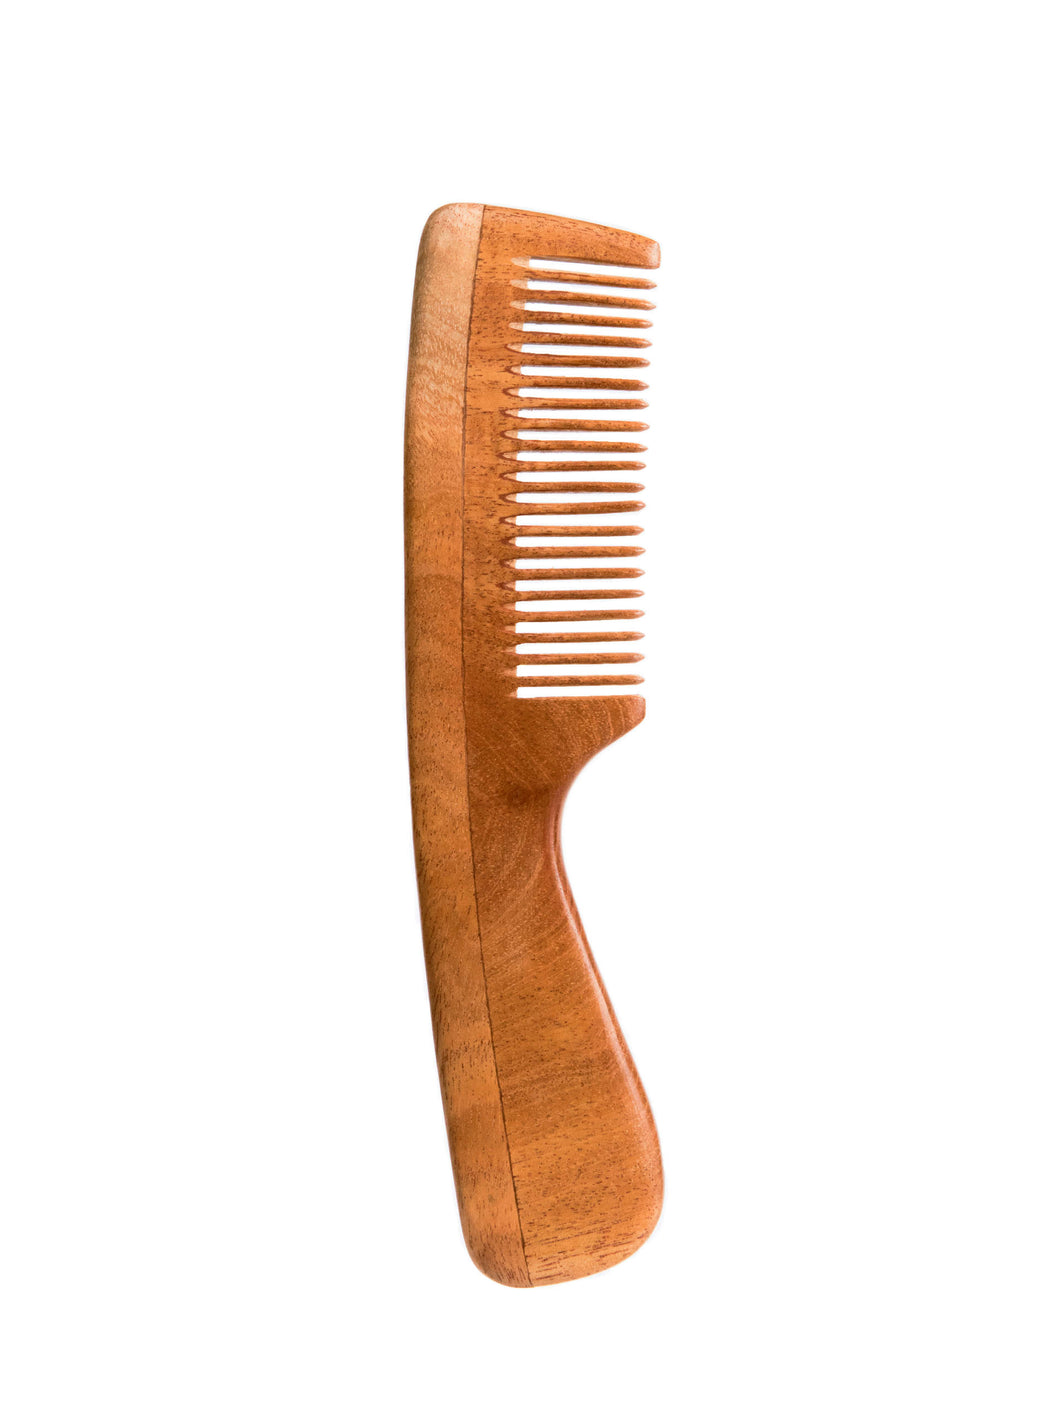 CLEAN PLANETWARE | Pure Neem Wood Hair Comb